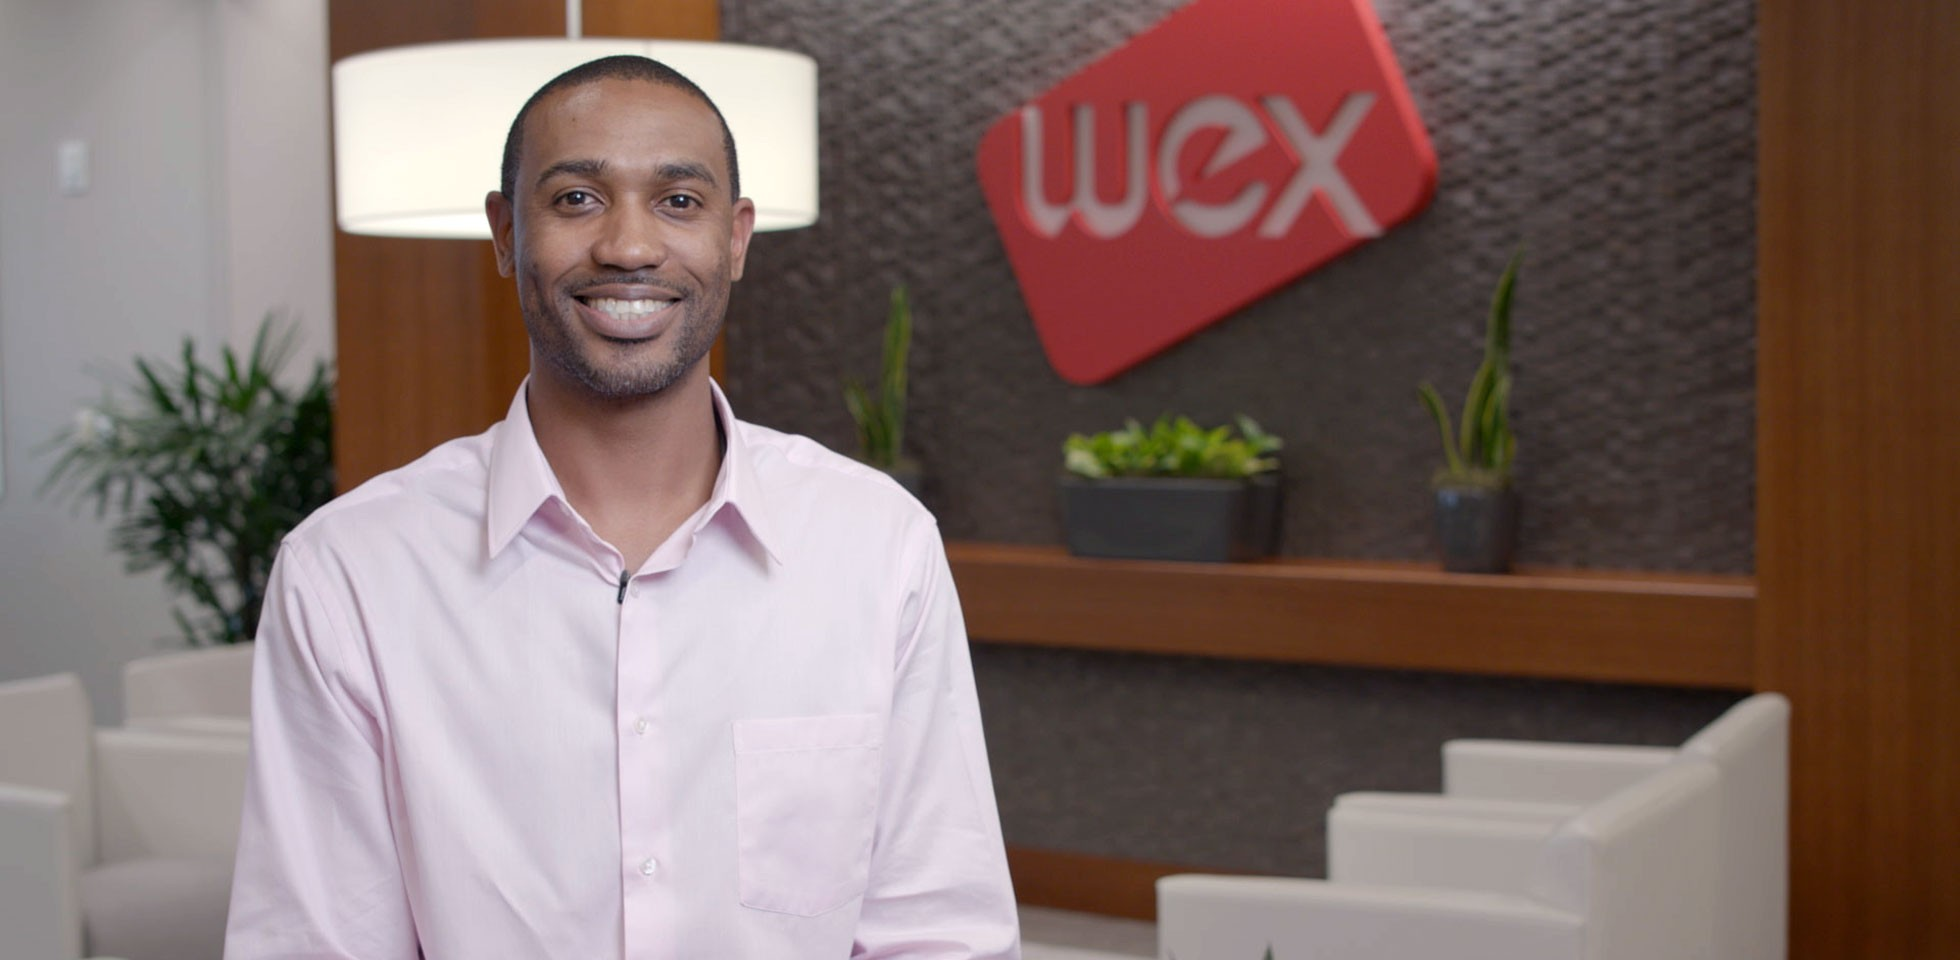 Jason Simpson, Client Relationship Manager - WEX Careers